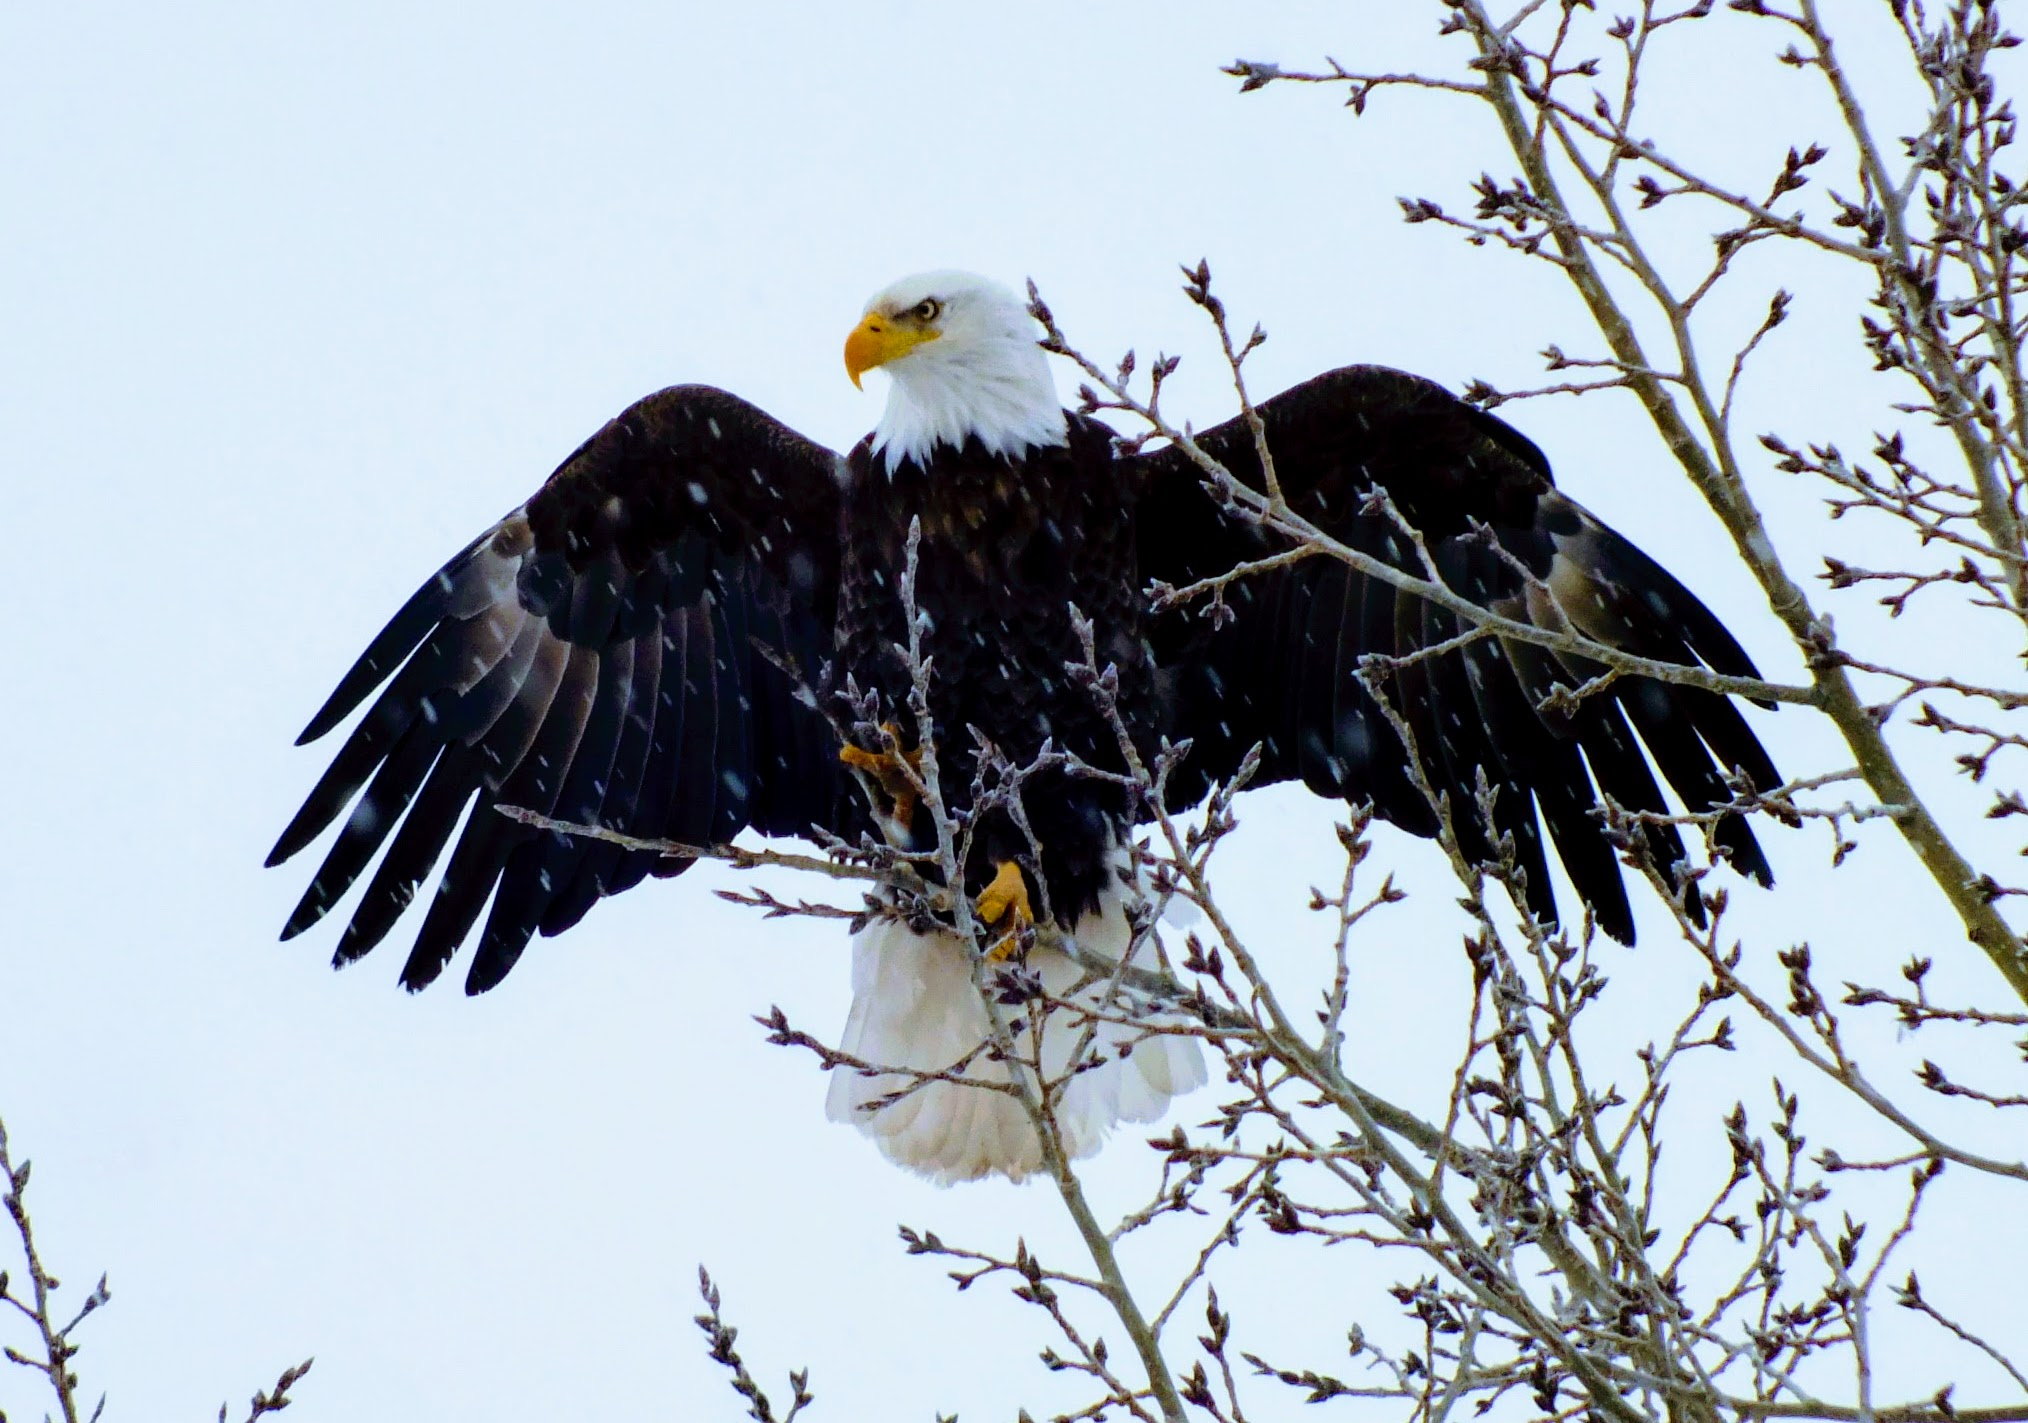 Eagle with spread wings